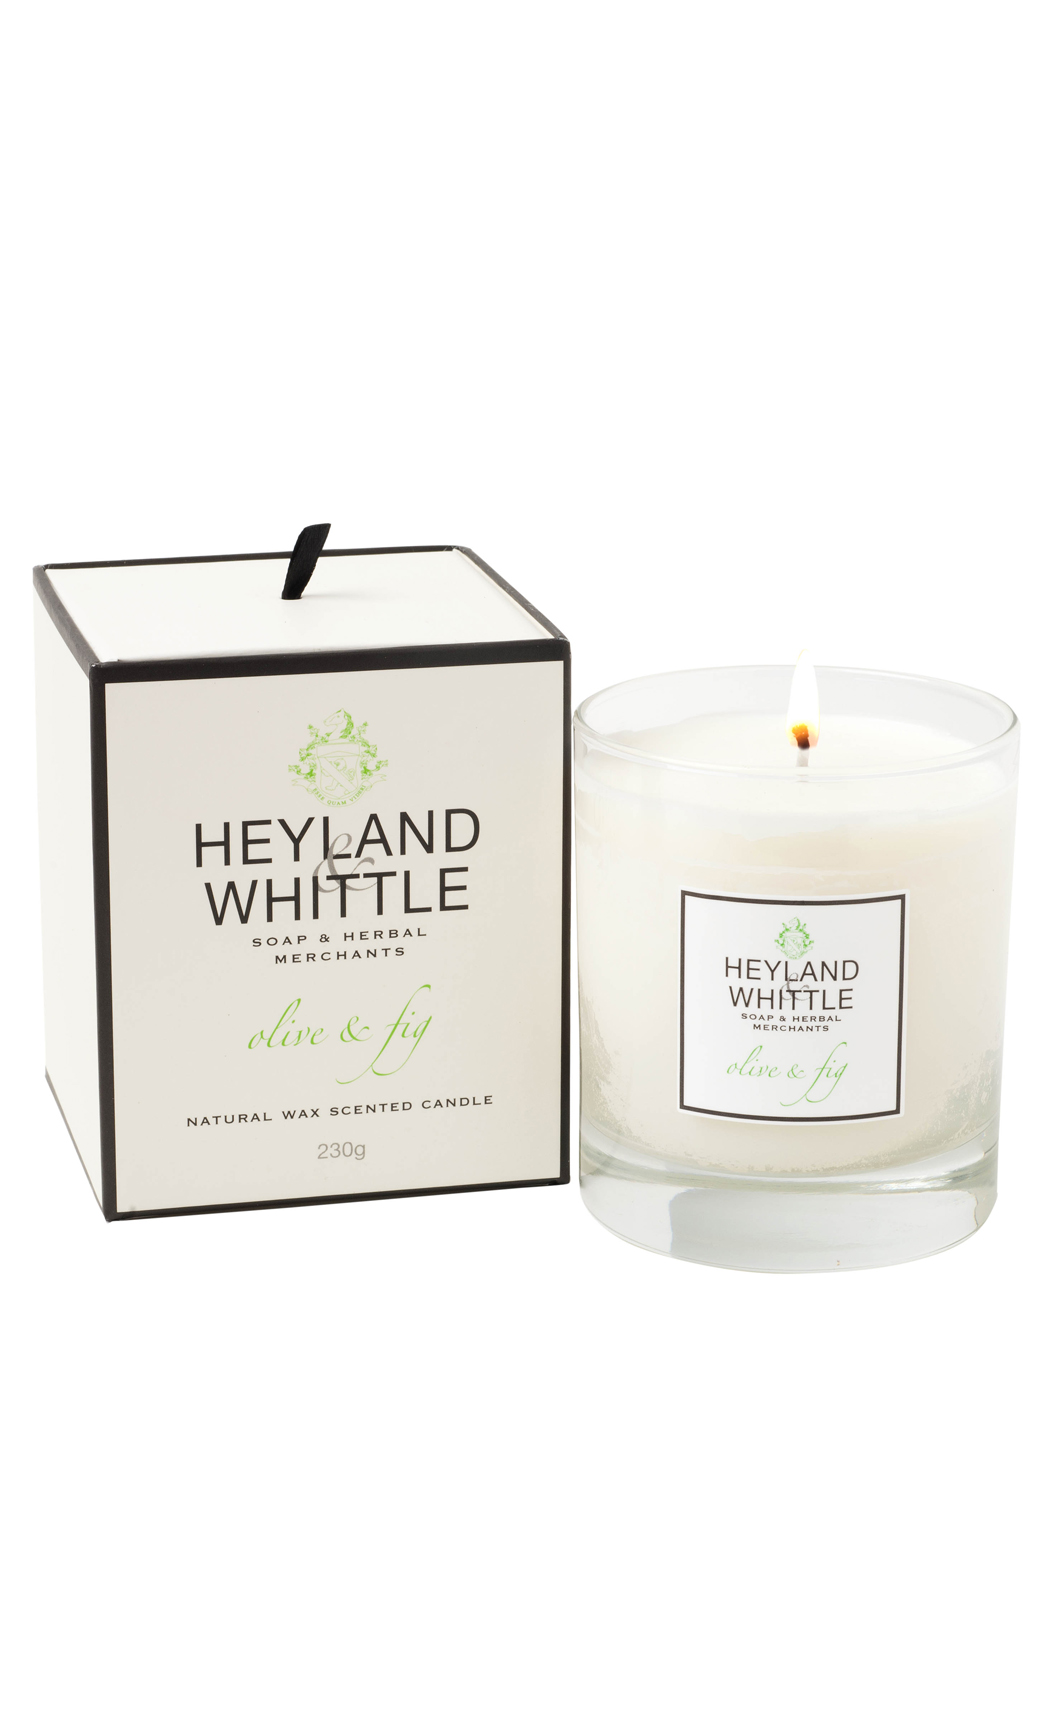 Olive & FIg Scented Soy Wax Candle by Heyland & Whittle